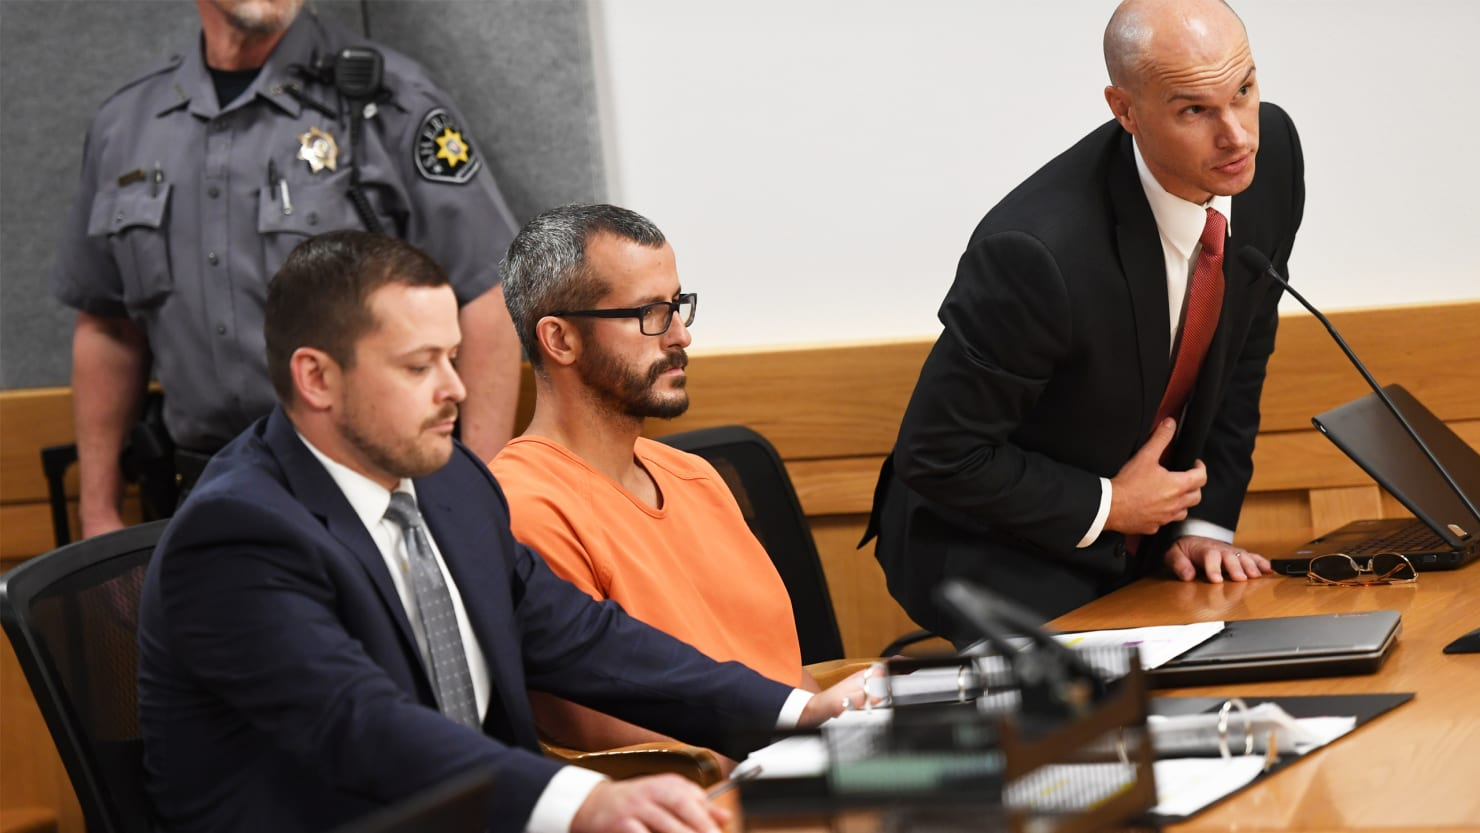 Denver Dad Chris Watts Gets Life in Prison as Attorneys Reveal Daughter Fought For Her Life